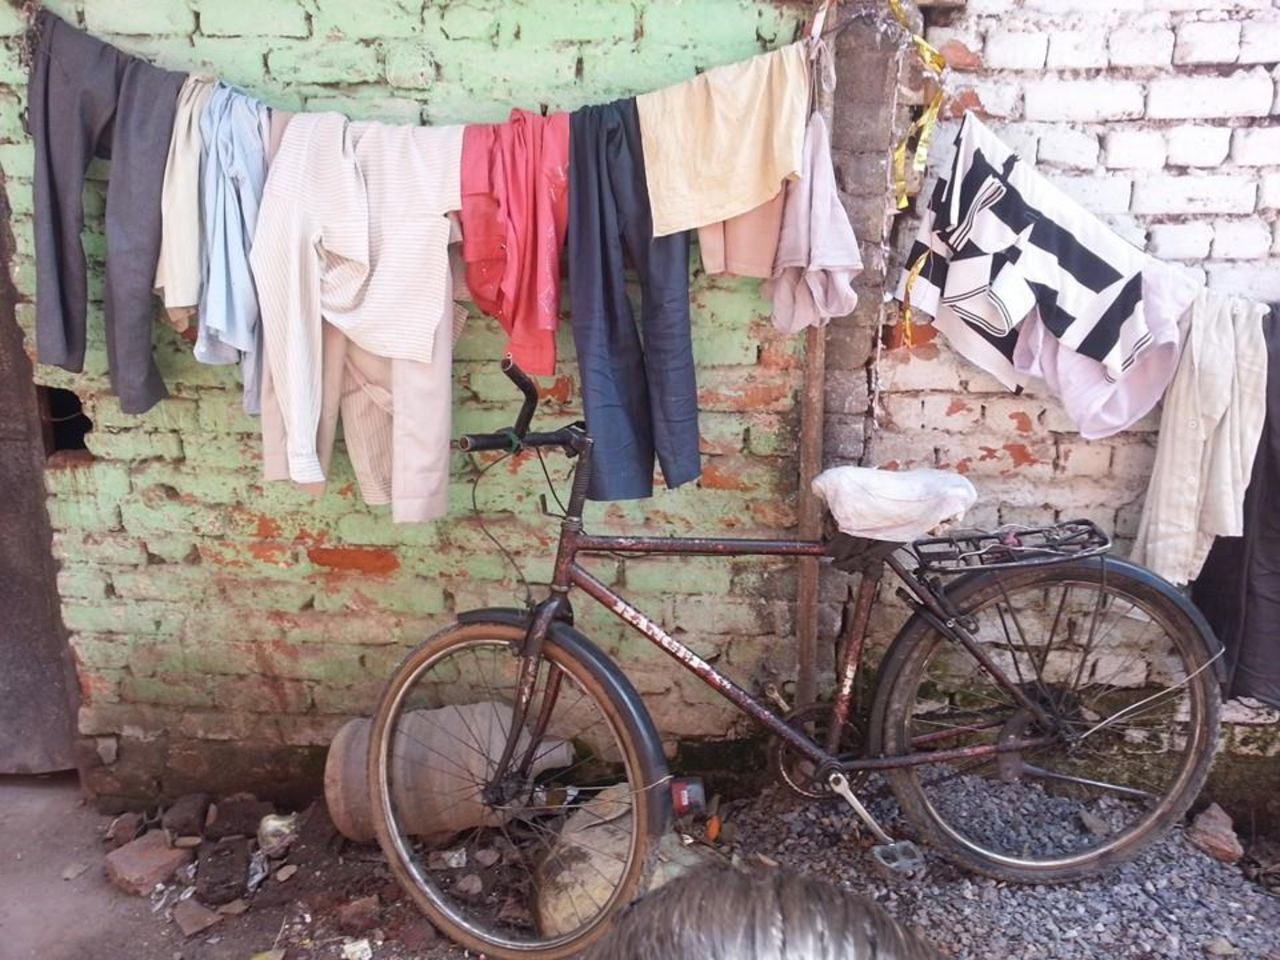 clothing, bicycle, no people, day, outdoors, architecture